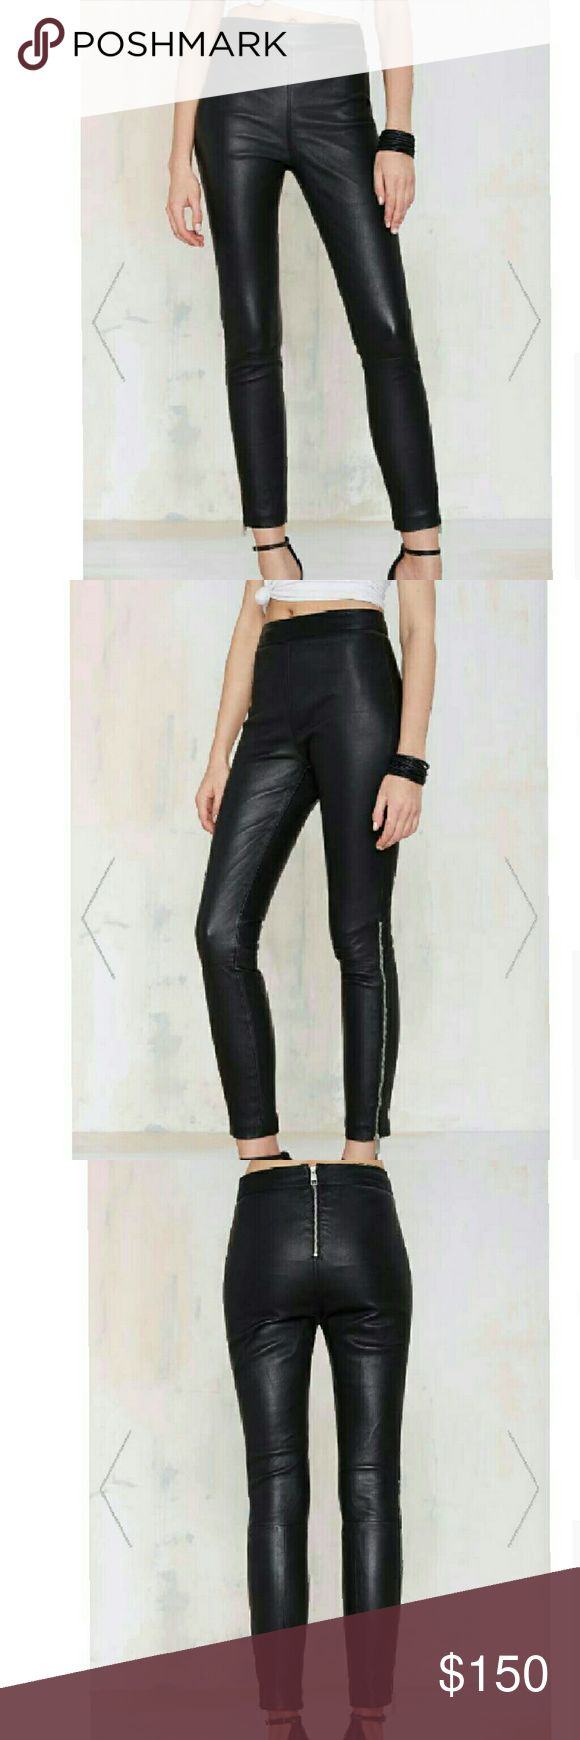 NASTY GAL AGAINST THE MACHINE LEATHER SKINNY PANTS Nasty Gal / The against the machine skinnies have custom matter silver zip closure at back and ankles, paneled detailing and full lining. Nasty Gal Pants Skinny